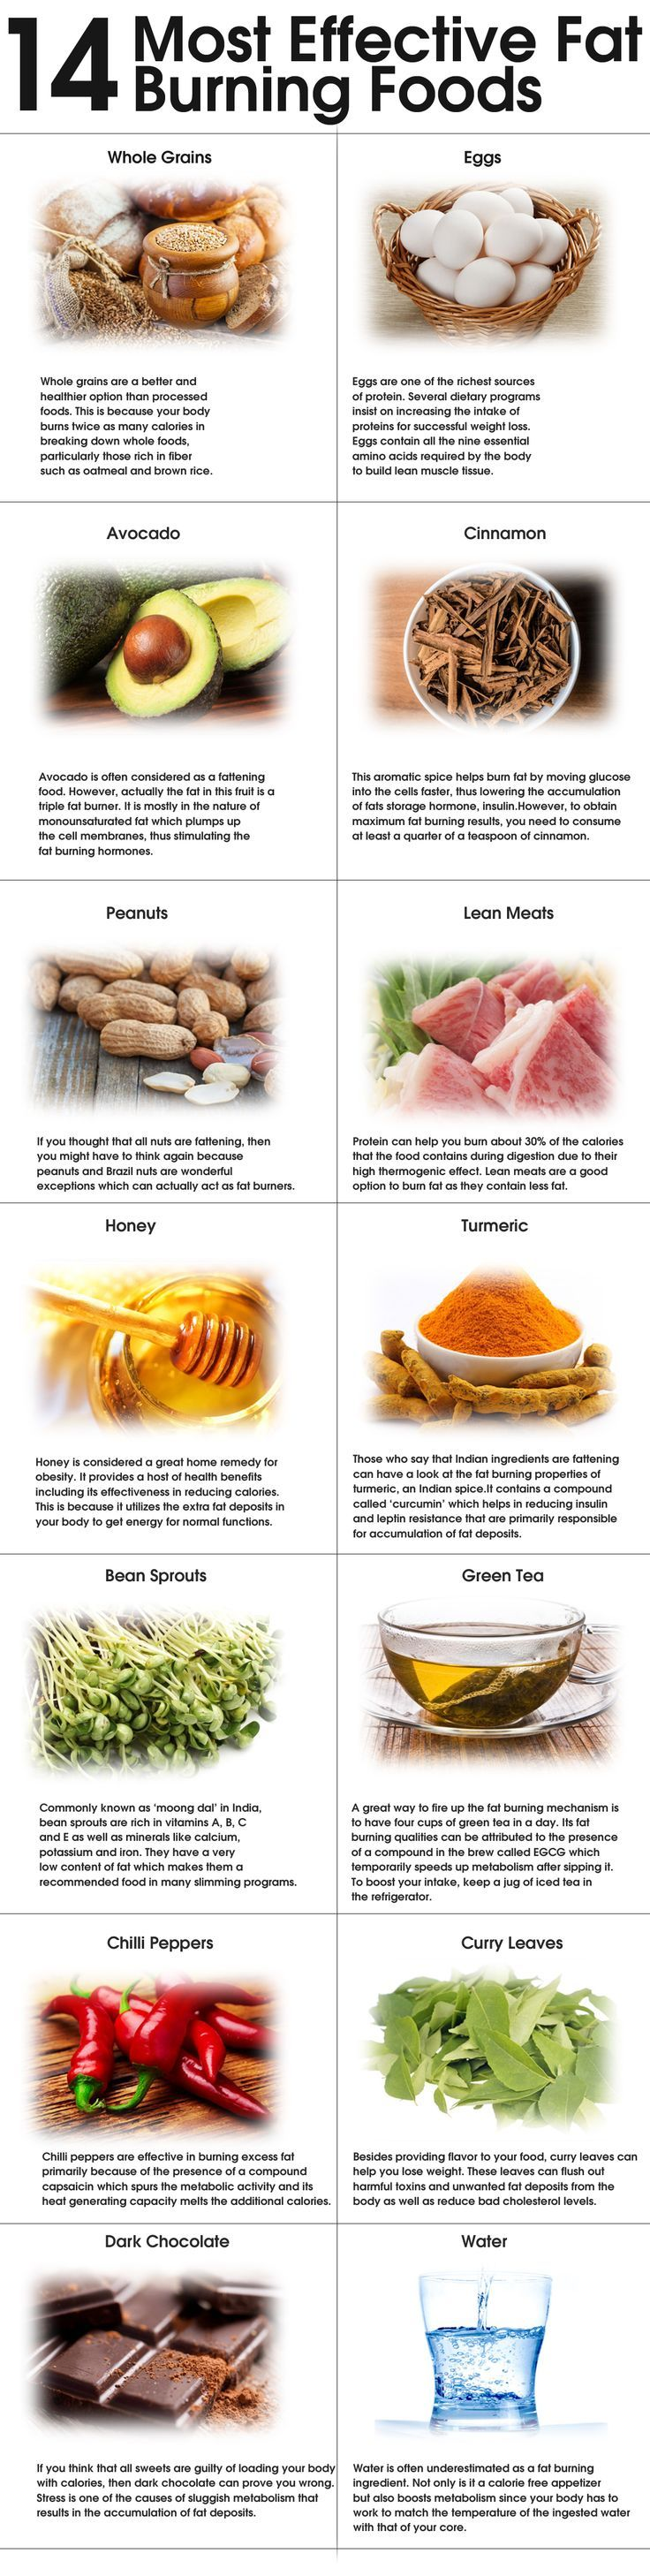 14 Effective foods, super healthy. I eat all on a regular basis apart from meat and peanuts :)